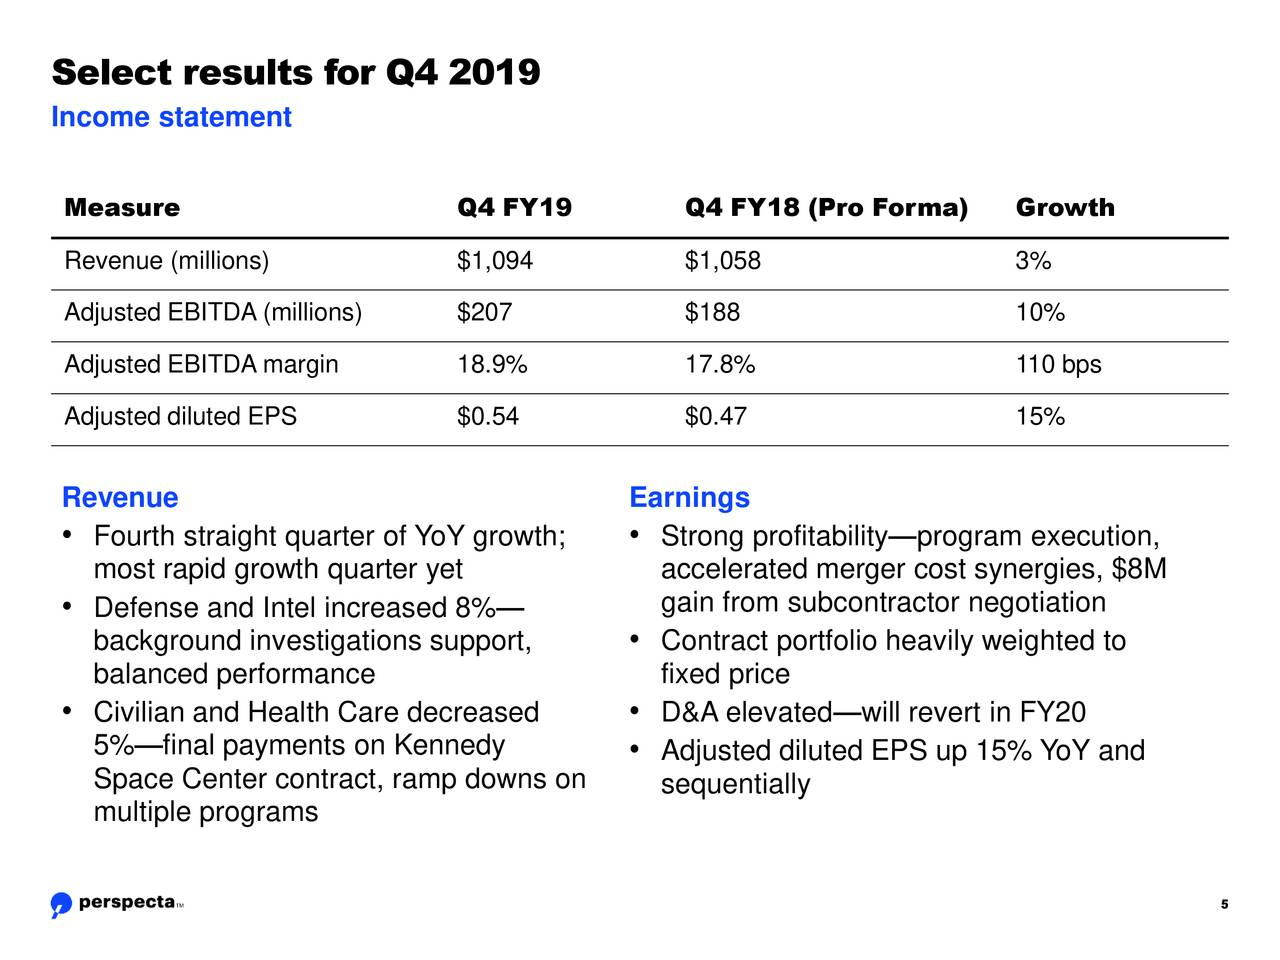 Income statement Measure Q4 FY19 Q4 FY18 (Pro Forma) Growth Revenue (millions) $1,094 $1,058 3% Adjusted EBITDA (millions) $207 $188 10% Adjusted EBITDA margin 18.9% 17.8% 110 bps Adjusted diluted EPS $0.54 $0.47 15% Revenue Earnings • Fourth straight quarter of YoY growth; • Strong profitability—program execution, most rapid growth quarter yet accelerated merger cost synergies, $8M • Defense and Intel increased 8%— gain from subcontractor negotiation background investigations support, • Contract portfolio heavily weighted to balanced performance fixed price • Civilian and Health Care decreased • D&A elevated—will revert in FY20 5%—final payments on Kennedy • Adjusted diluted EPS up 15% YoY and Space Center contract, ramp downs on sequentially multiple programs 5